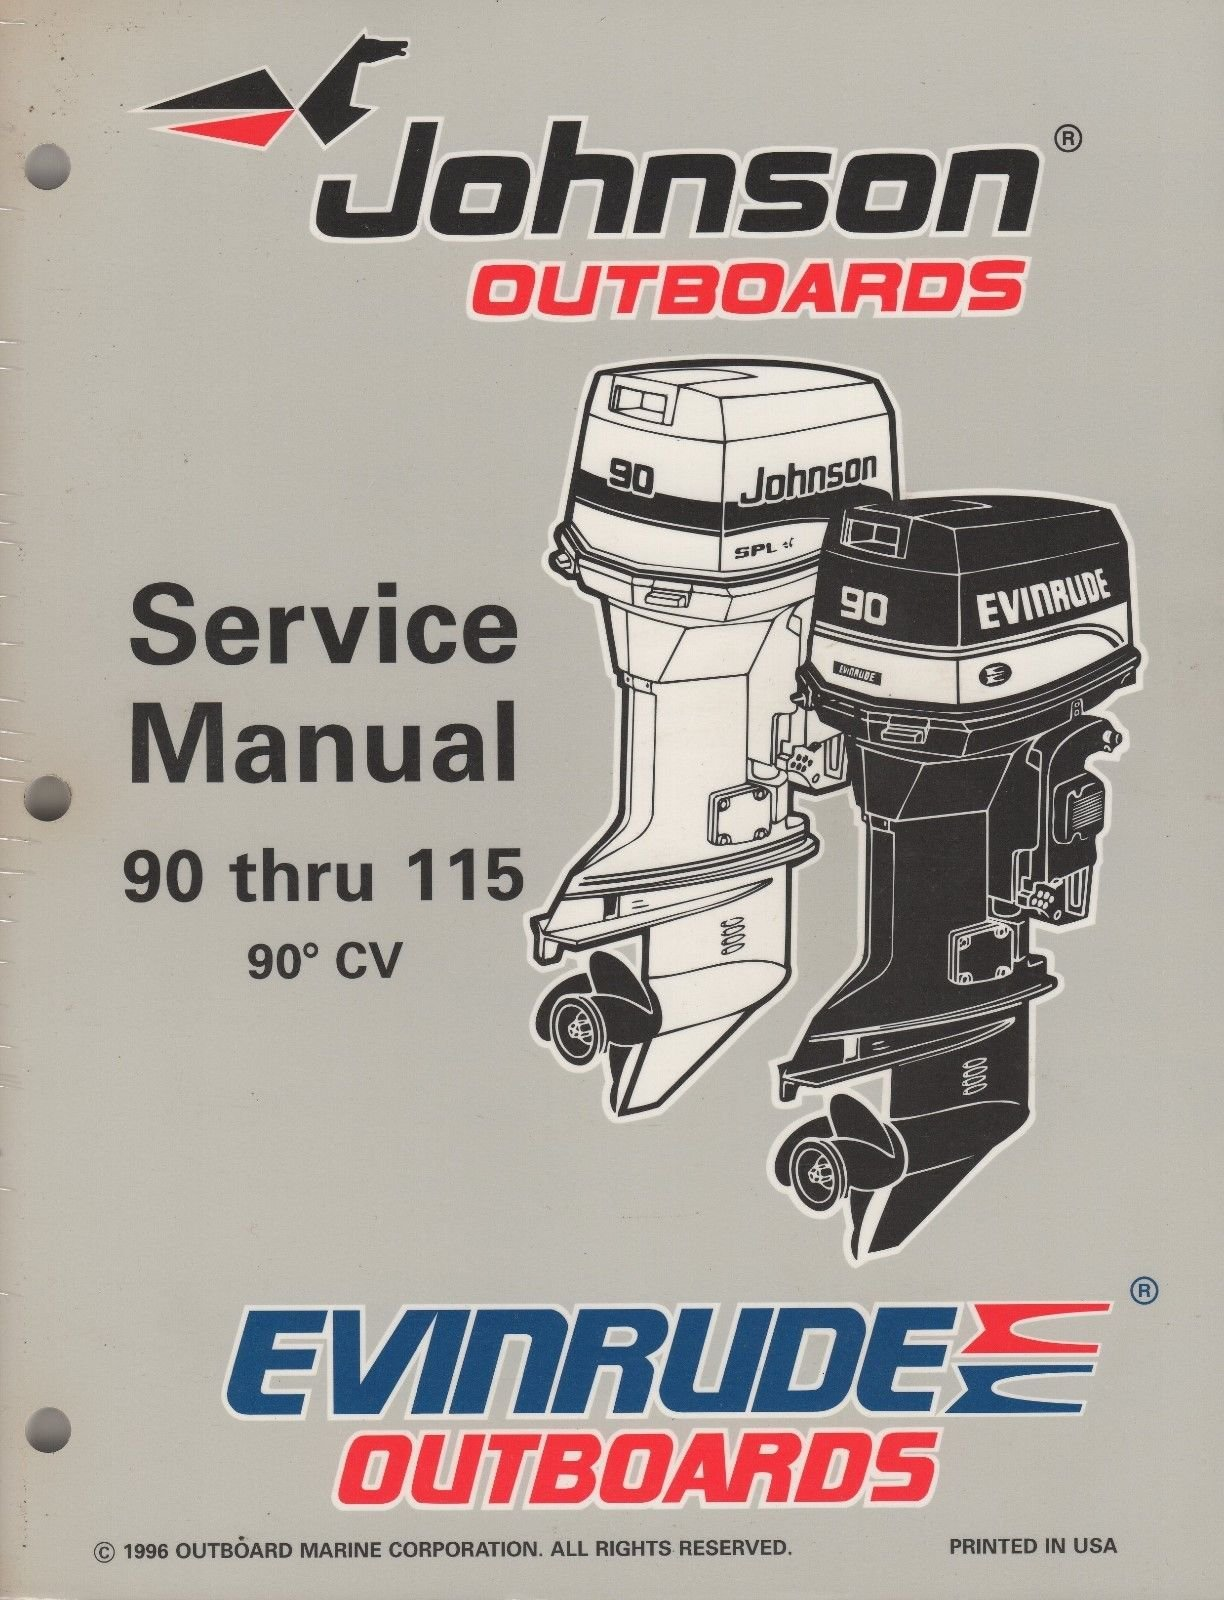 1997 JOHNSON EVINRUDE OUTBOARD 90 THRU 115, 90' CV SERVICE MANUAL (321):  OMC: Amazon.com: Books